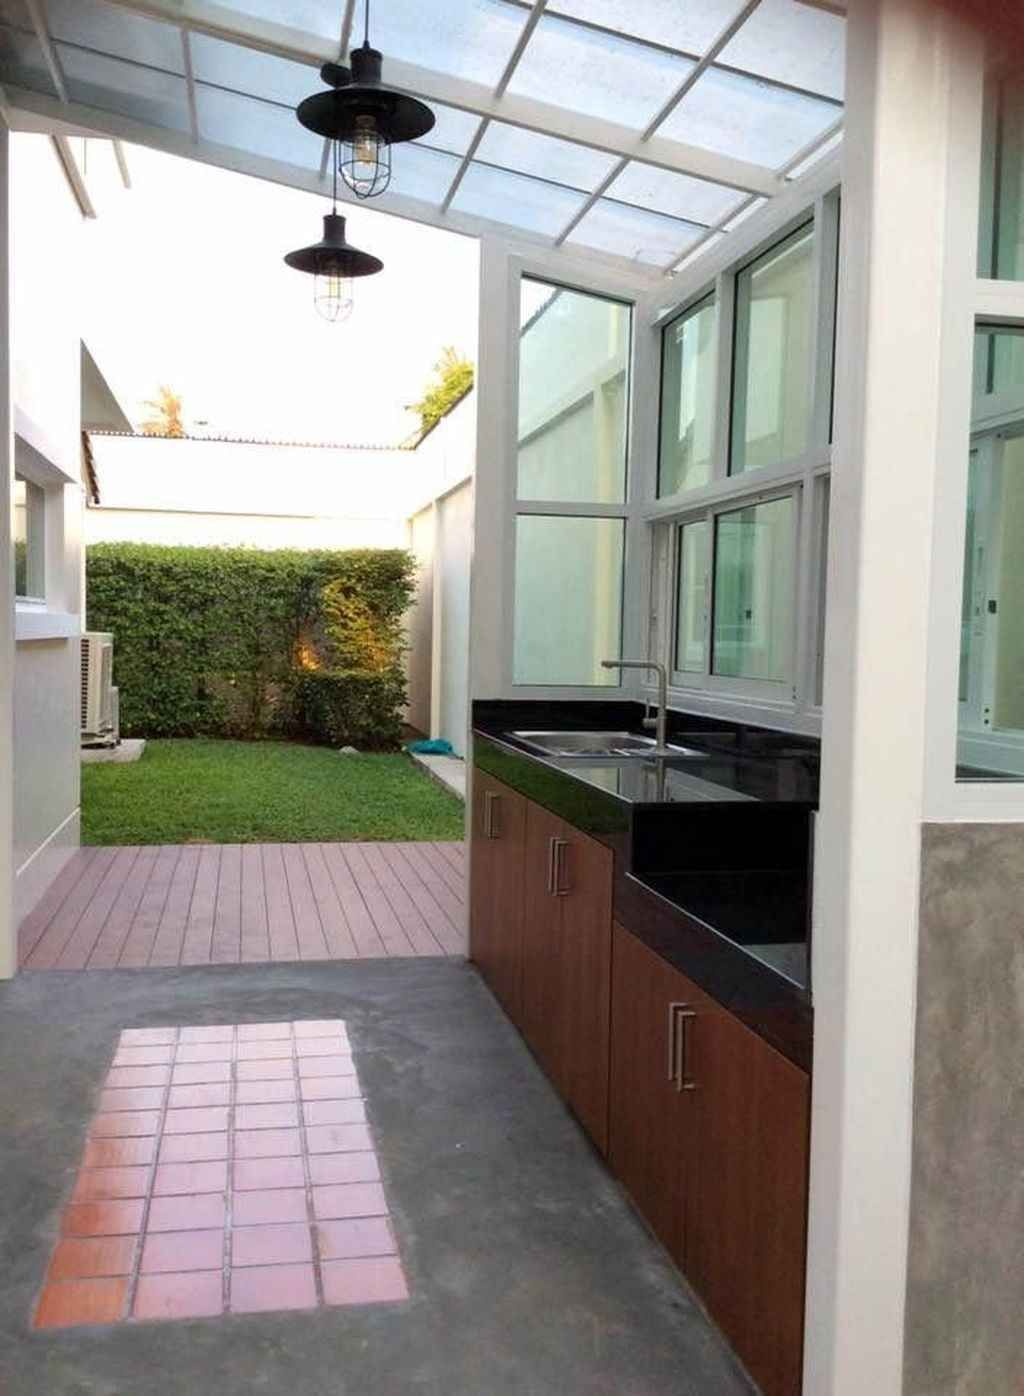 Explore beautiful outdoor kitchen design ideas and tips for designing your own outdoor cooking space. Pin on Kitchen Makeover Design